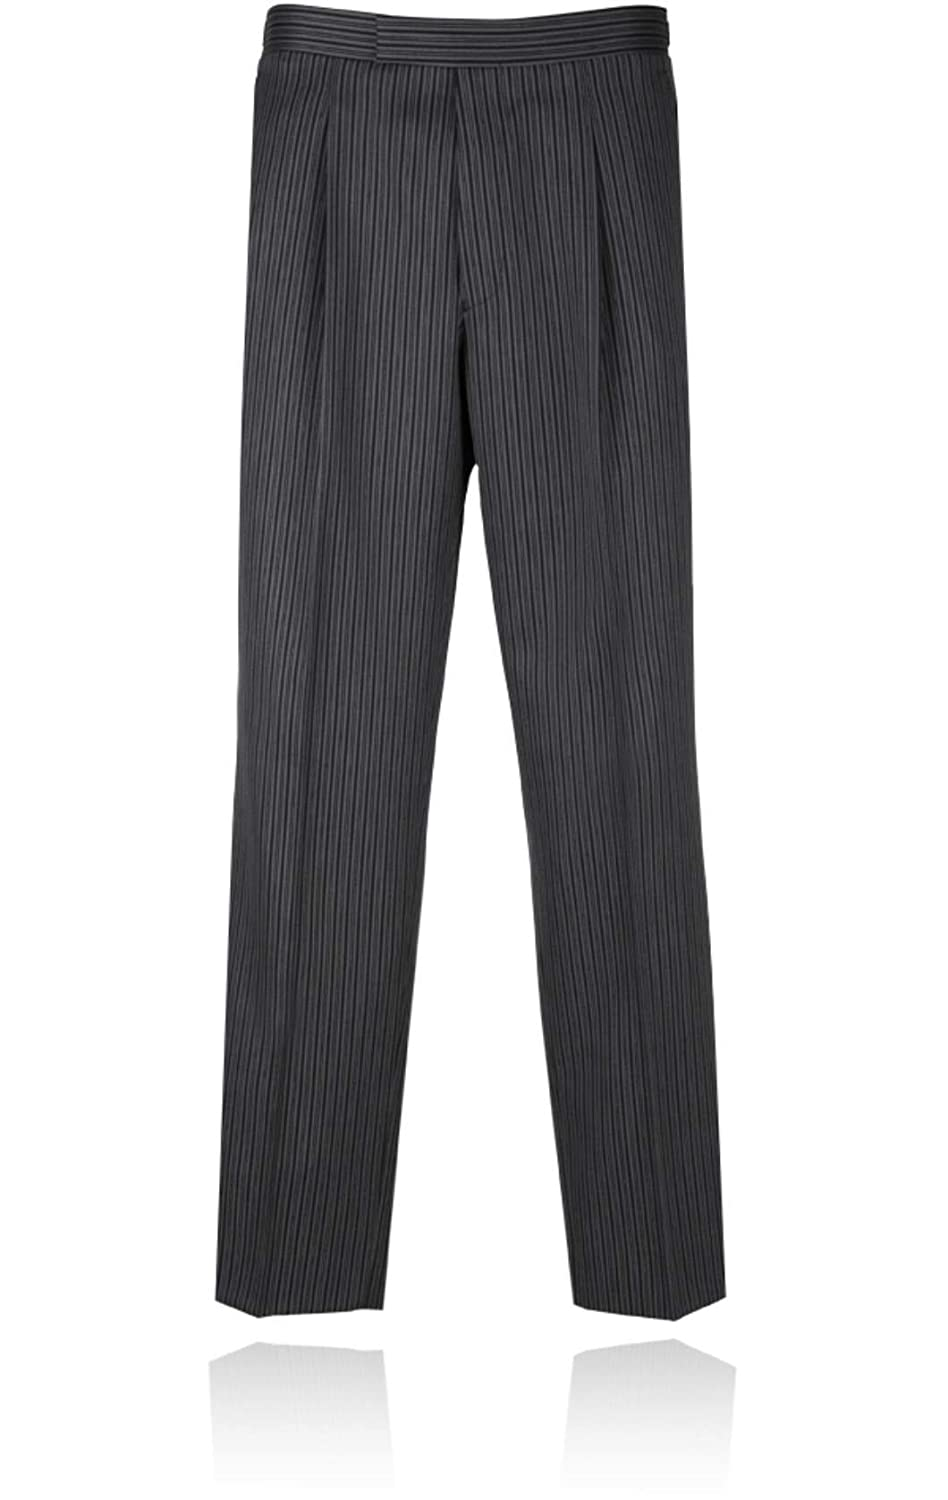 Steampunk Pants Mens Mens Black & Grey Striped Morning Suit Trousers £50.00 AT vintagedancer.com